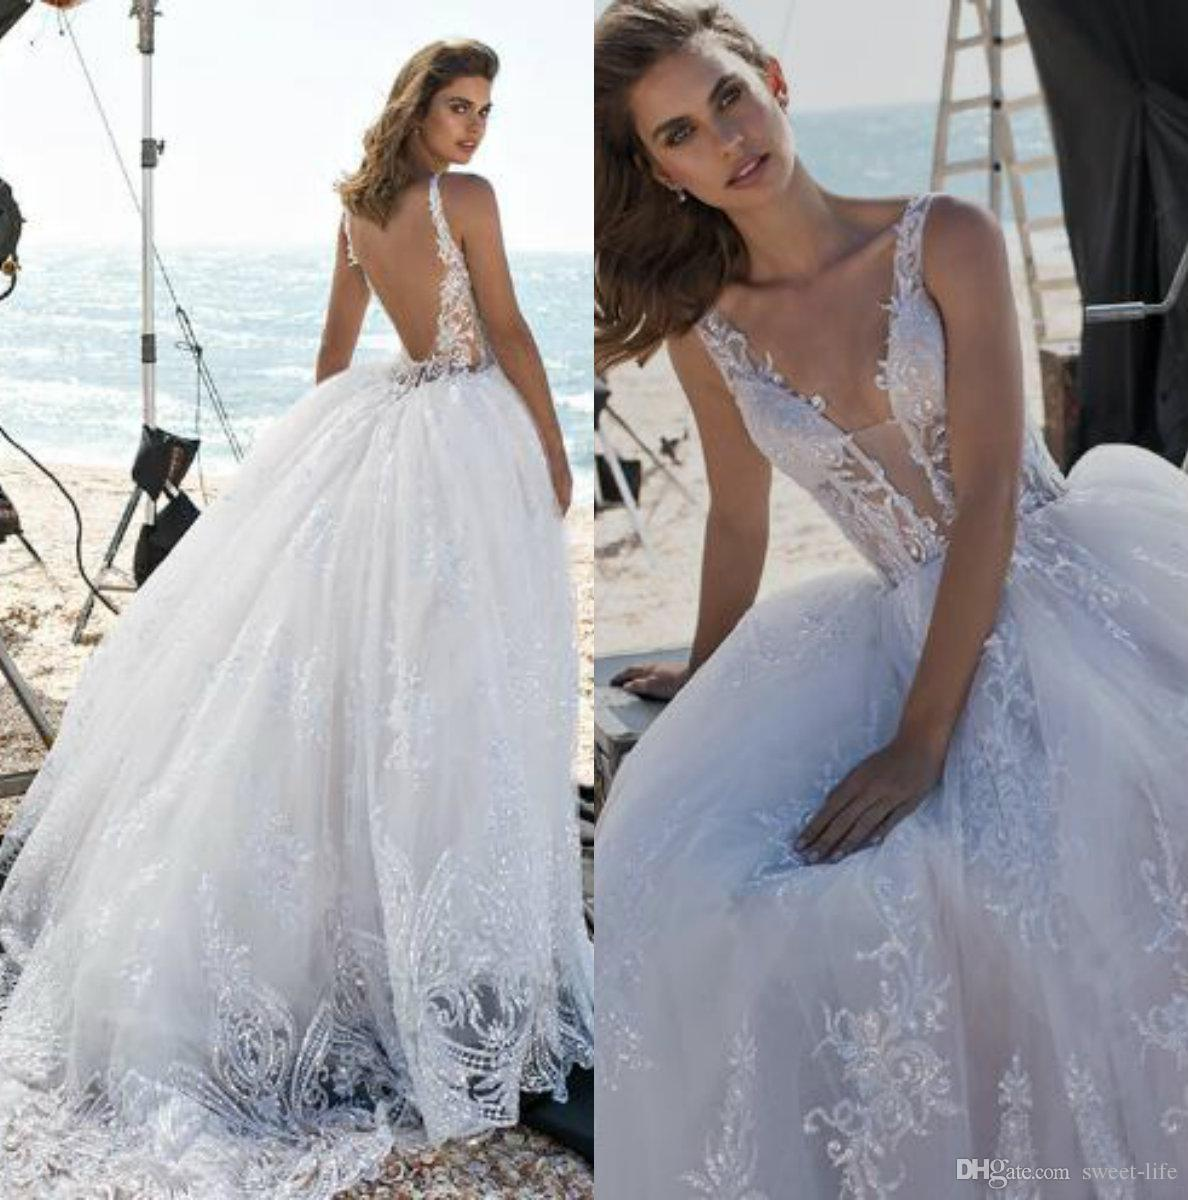 c177f2c4fa3 Discount 2019 Pnina Tornai A Line Sexy Wedding Dresses Spaghetti Backless  Lace Bridal Gowns Sweep Train Plus Size Beach Wedding Dress A Line Wedding  Dresses ...